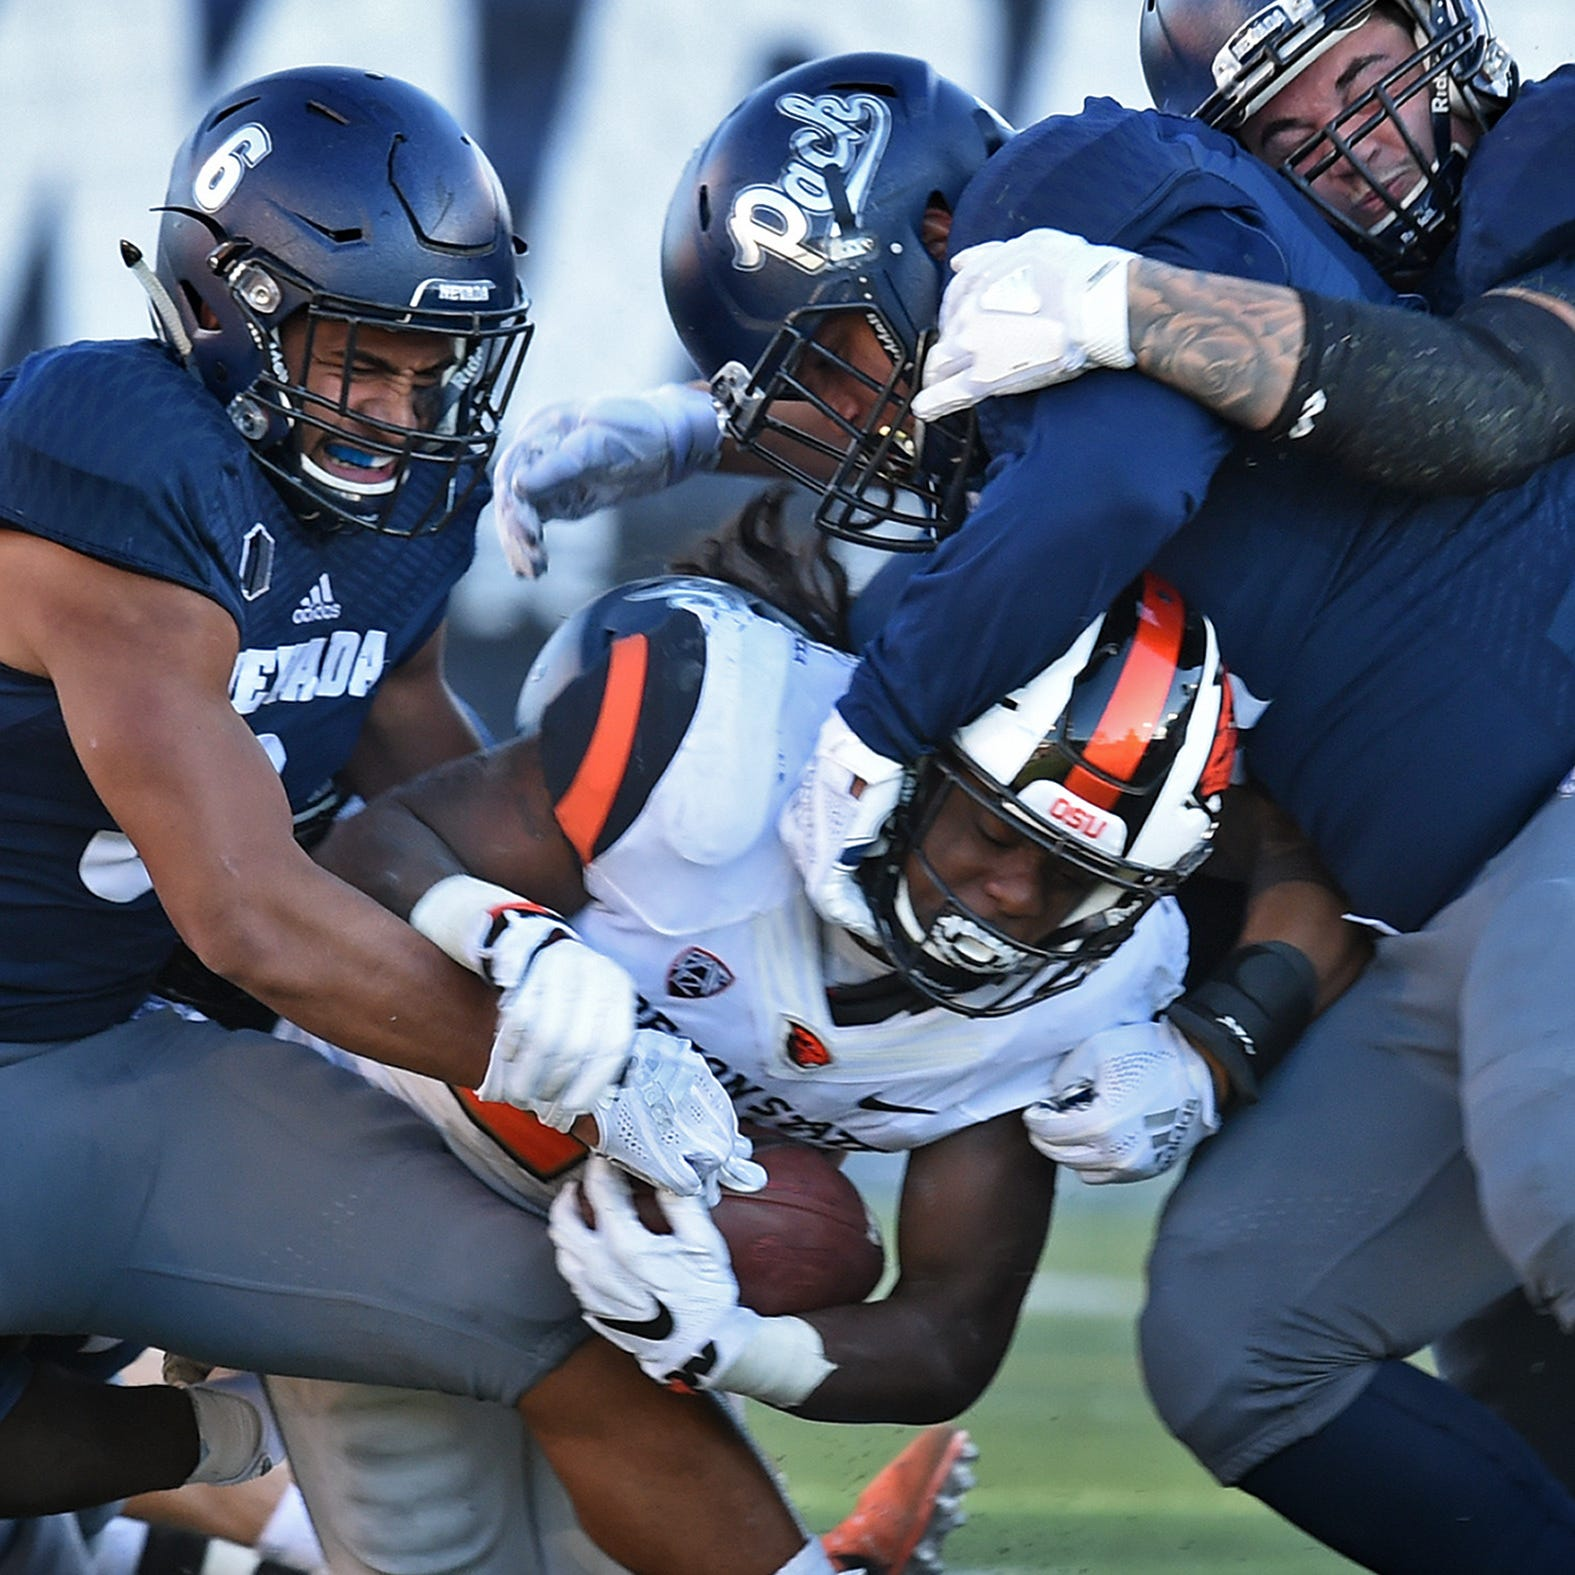 Coming off big Oregon State win, it's 'on to the next page' for Wolf Pack